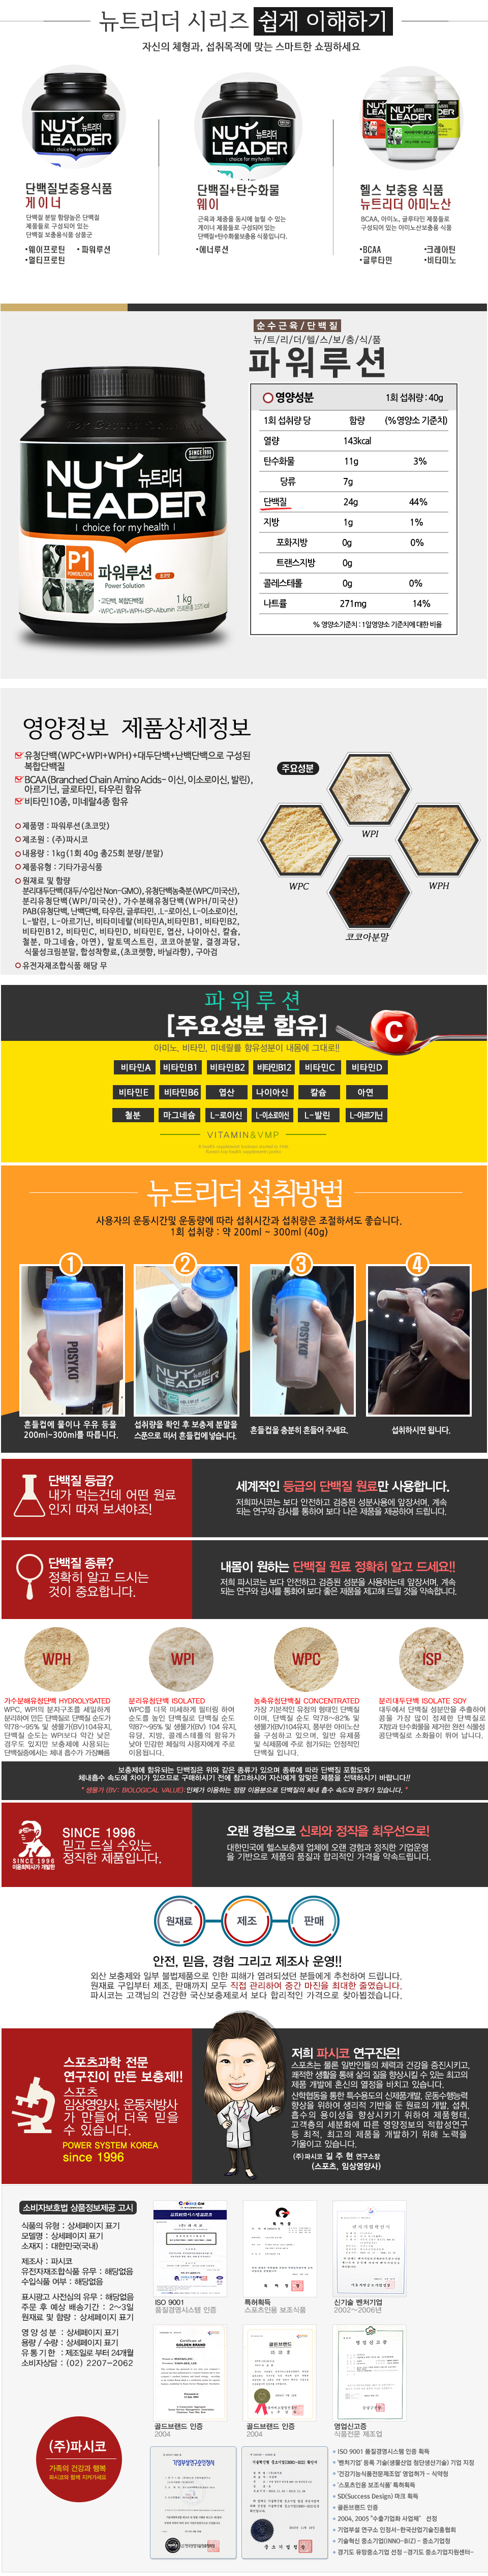 [ etc ] Powersoution Chocolate Flavor 1Kg (Weight Training) Protein Supplement/Health Supplement/Shaker Included